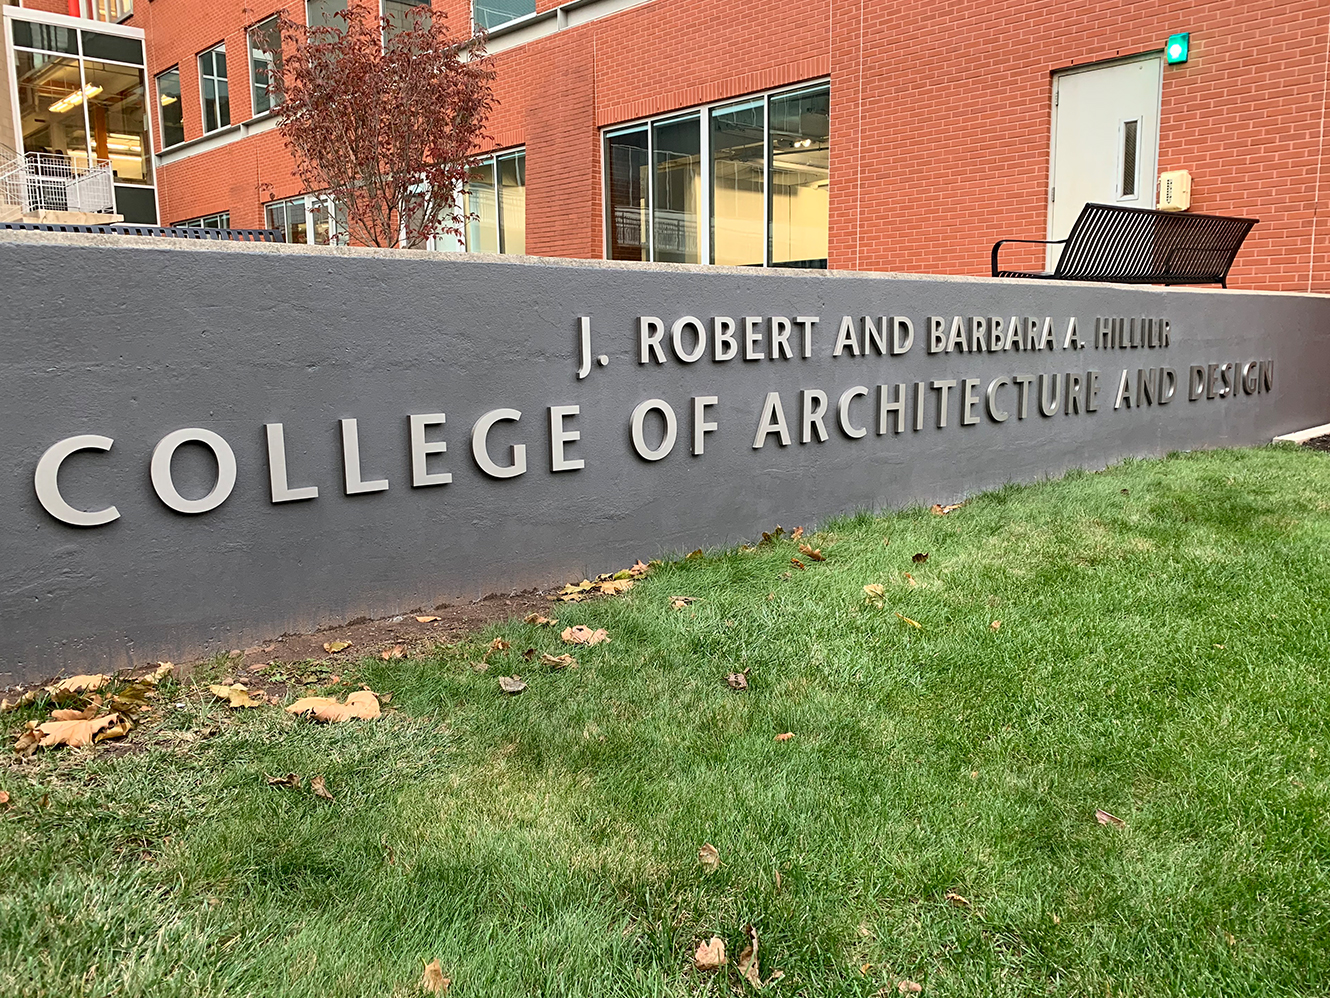 J. Robert and Barbara A. Hillier College of Architecture and Design